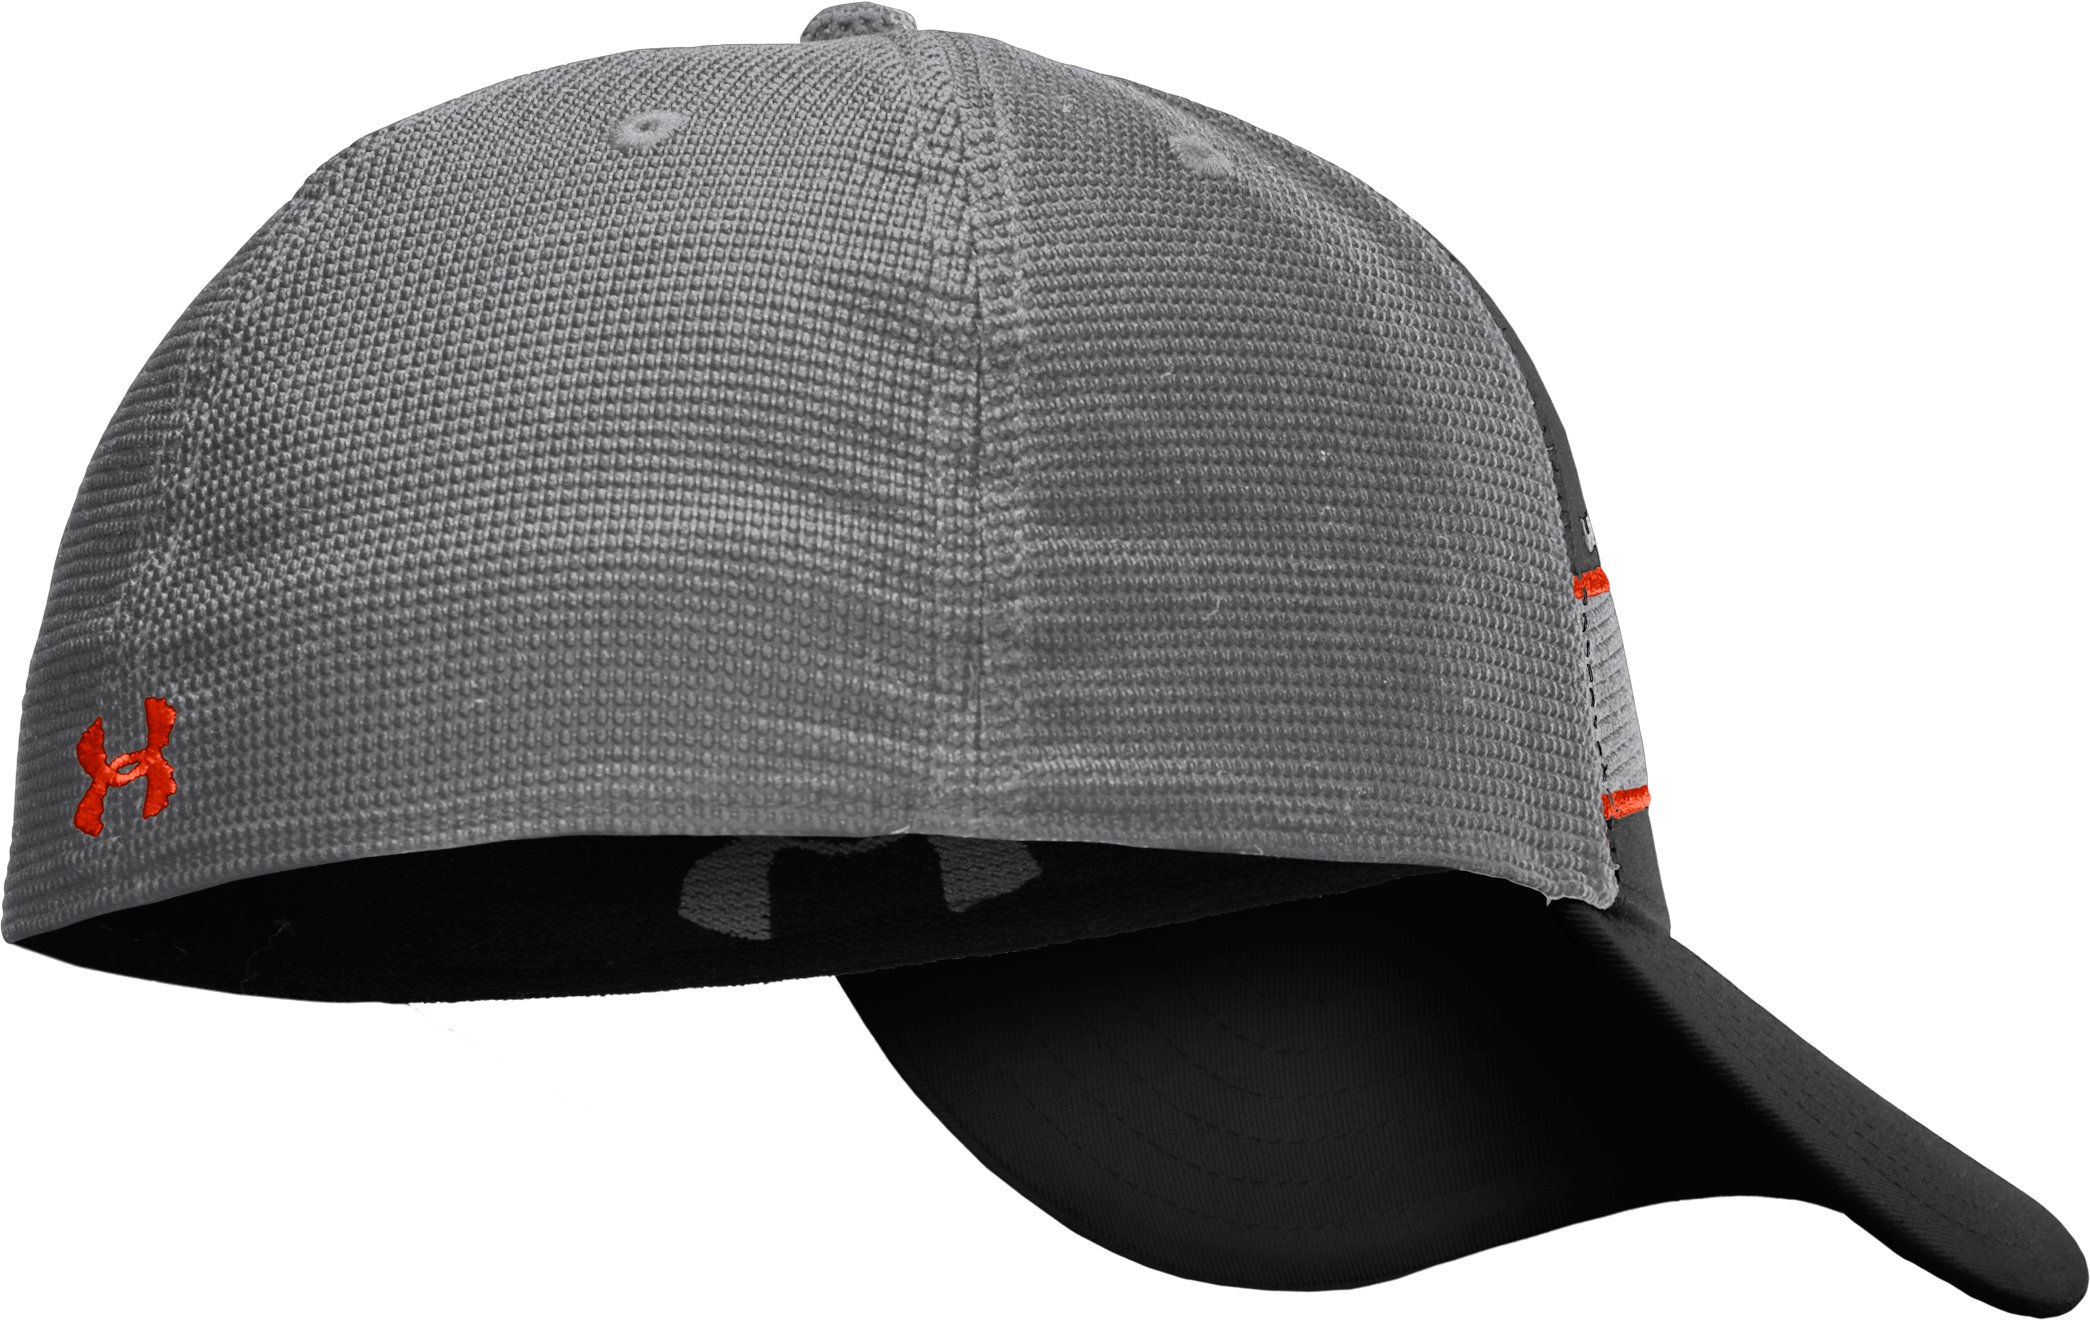 Men's Dauntless Stretch Fit Cap, Black